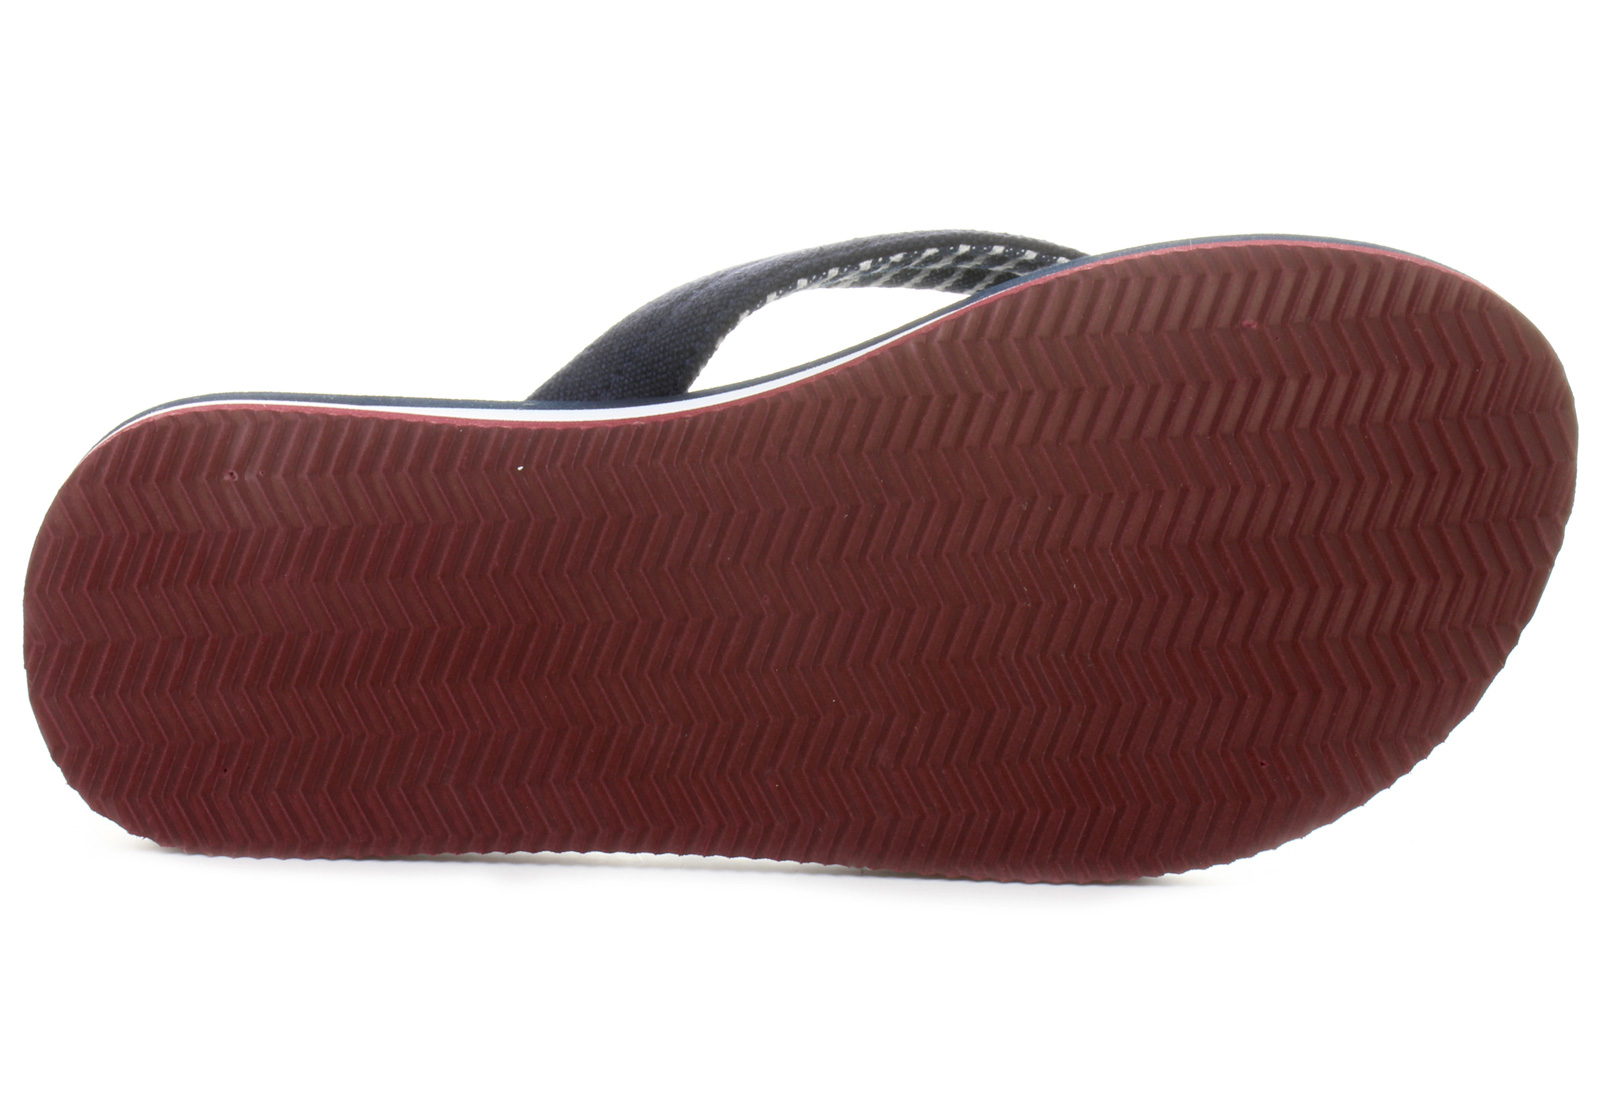 ef42acde33d Lacoste Slippers - Randle - 141spw0115-db4 - Online shop for ...